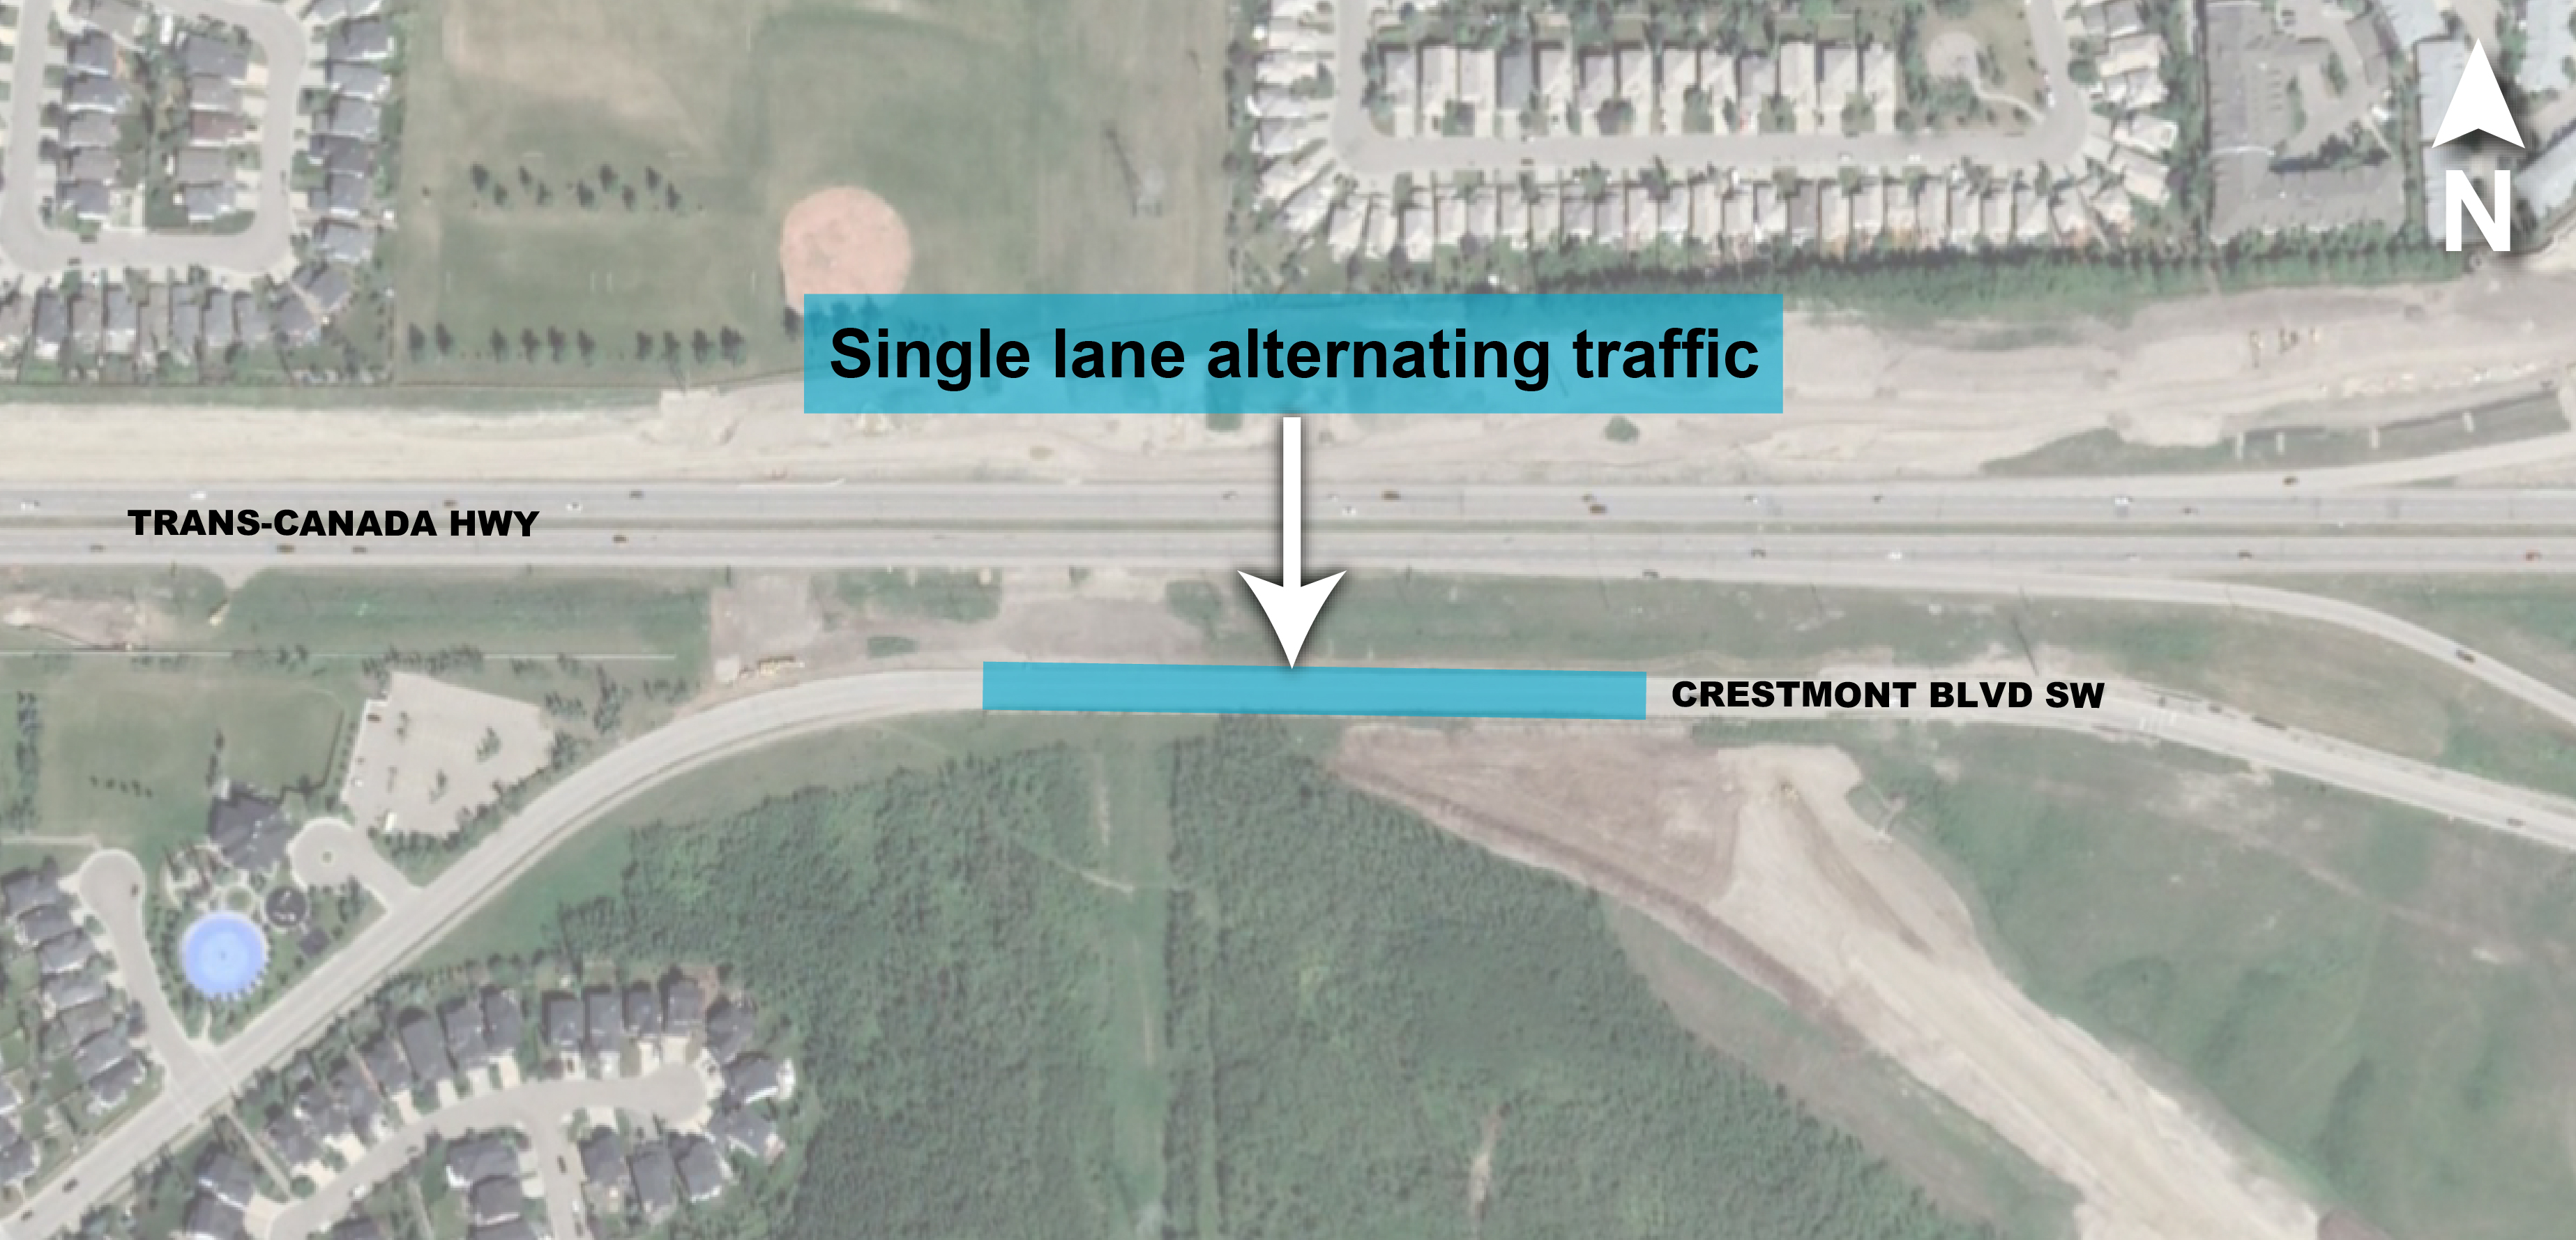 Crestmont alternating traffic map